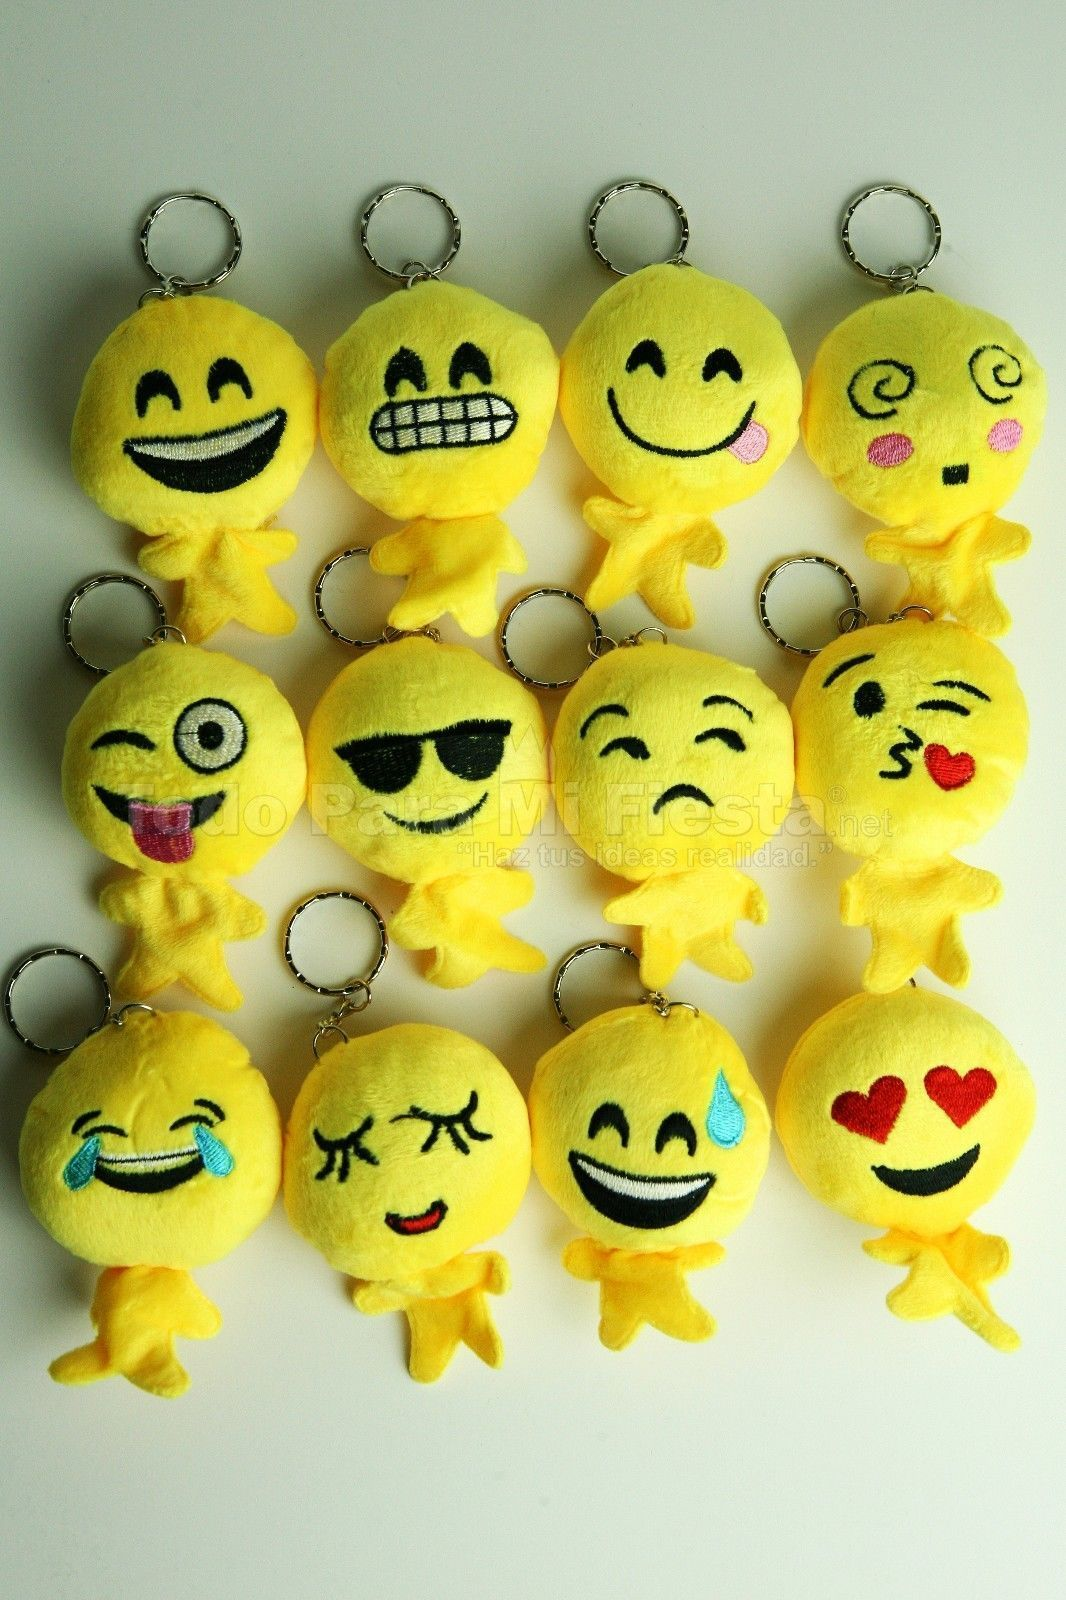 Details About 12 Pc EMOJI KEY CHAINS EMOTIONS PLUSH PARTY FAVORS